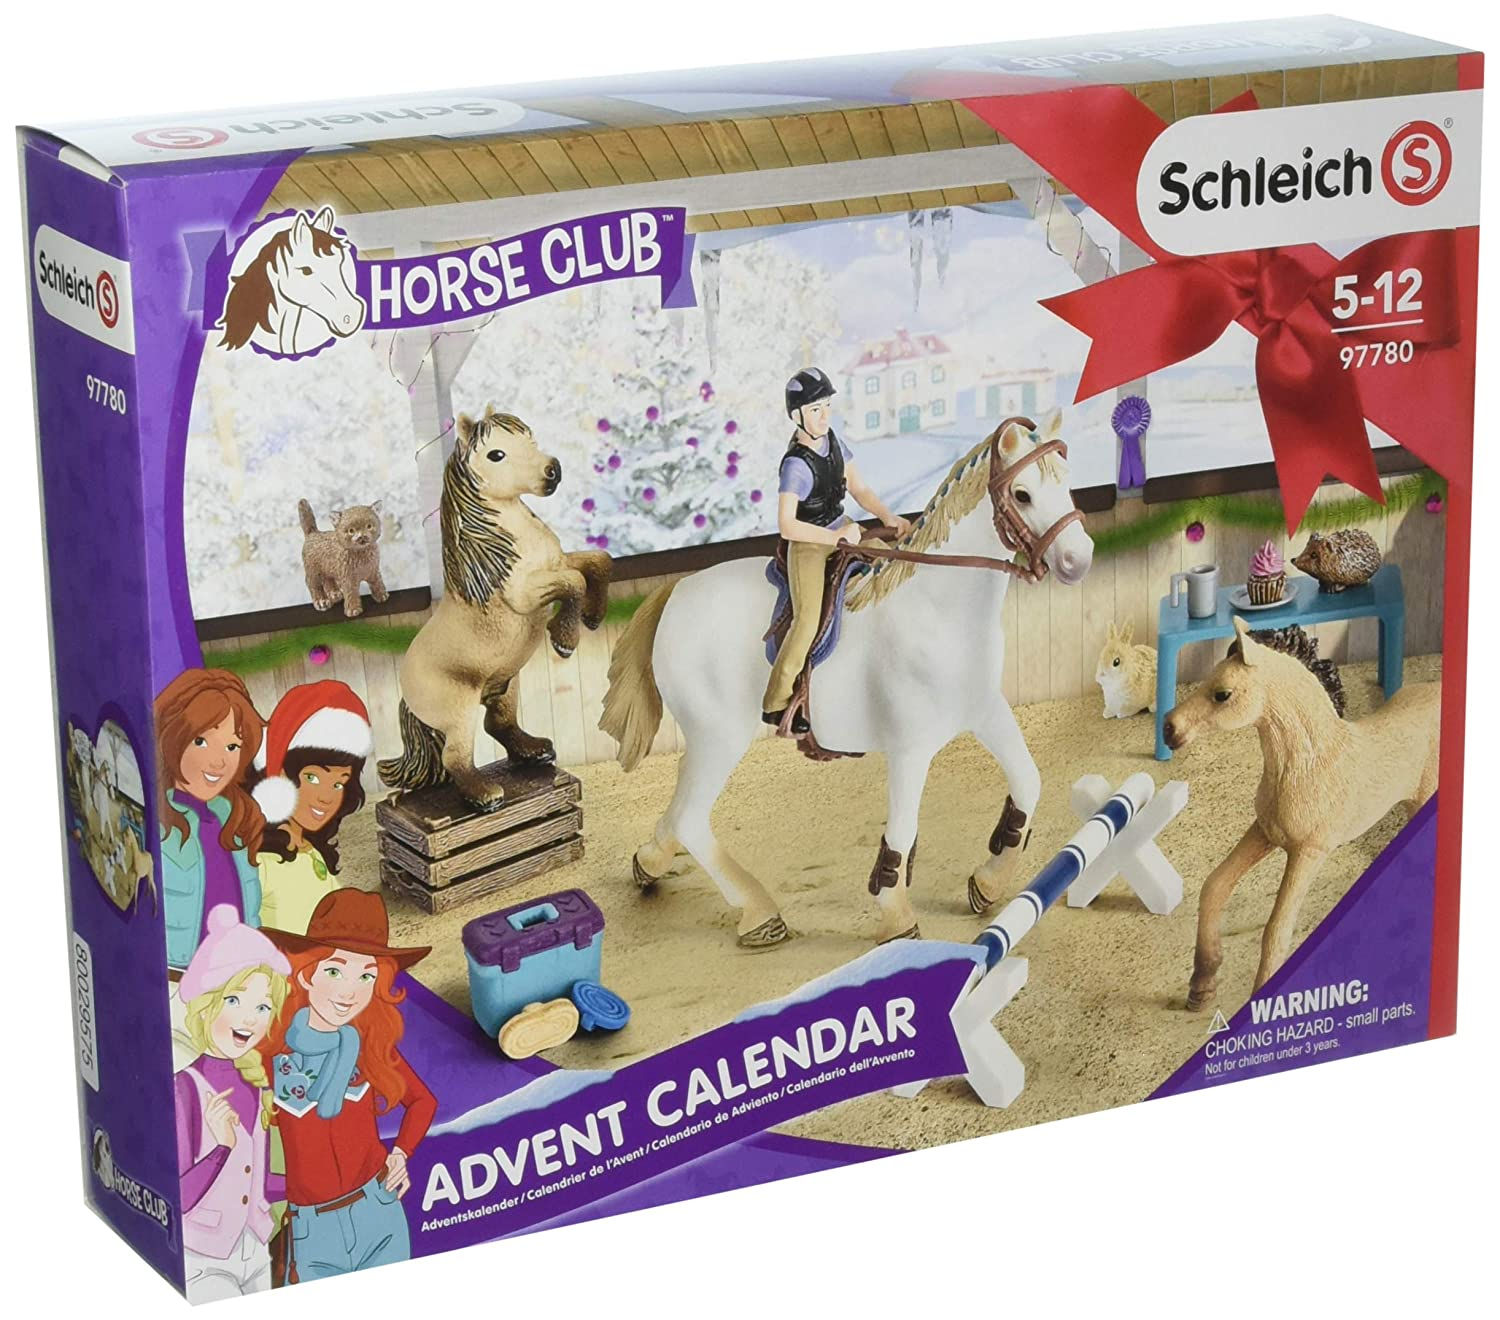 Horse Club Schleich 97780 Calendario de adviento 2018